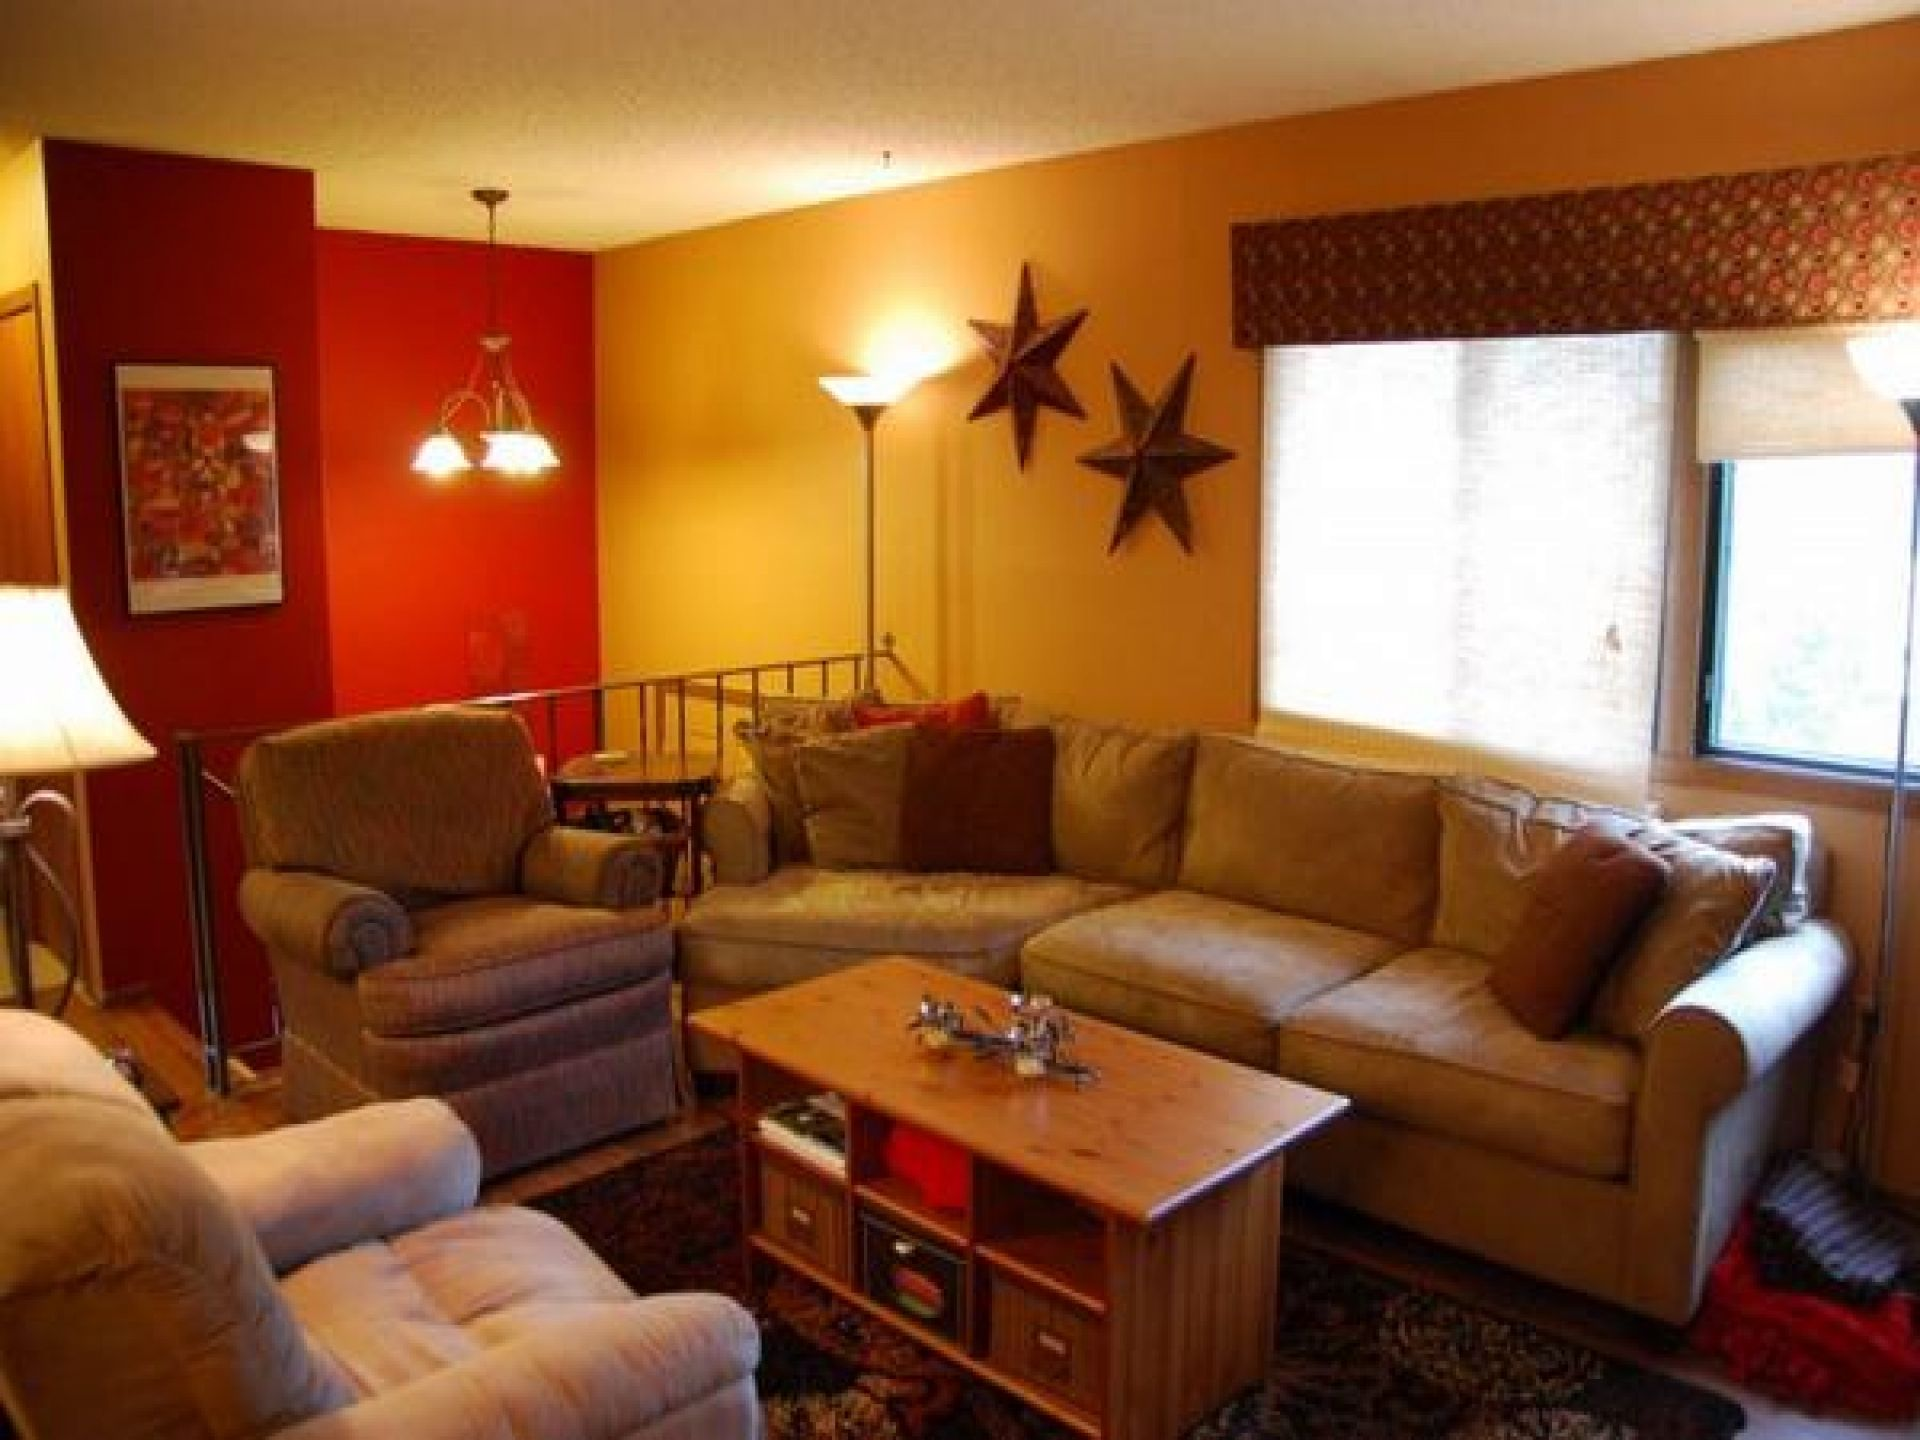 Ideas Elegant Tan Living Couch Feat Red And Yellow Wall Colors For Room